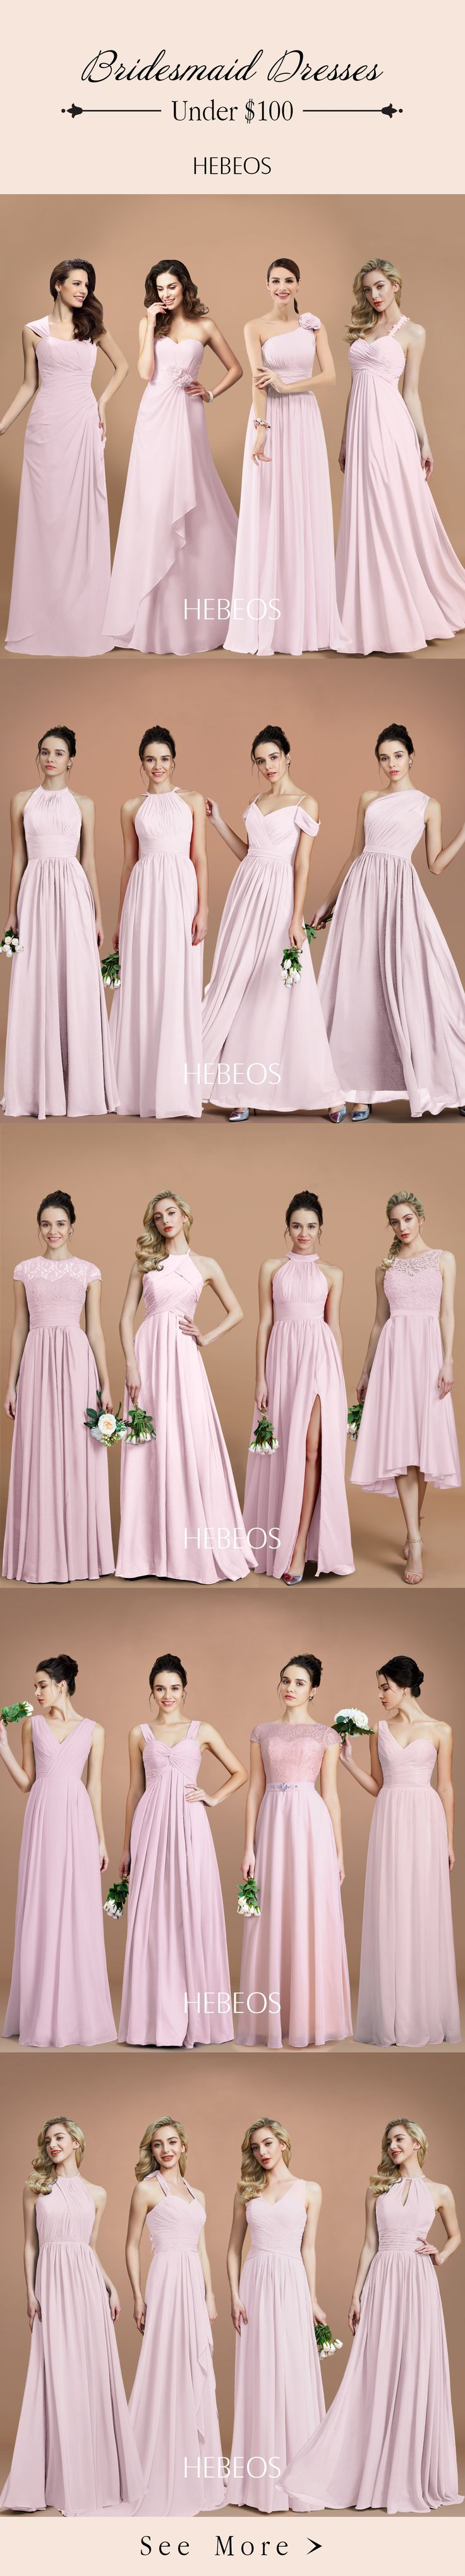 The 25 best coral colored bridesmaid dresses ideas on pinterest searching for pink or coral bridesmaid dresses shop at hebeos to find stunning ombrellifo Images